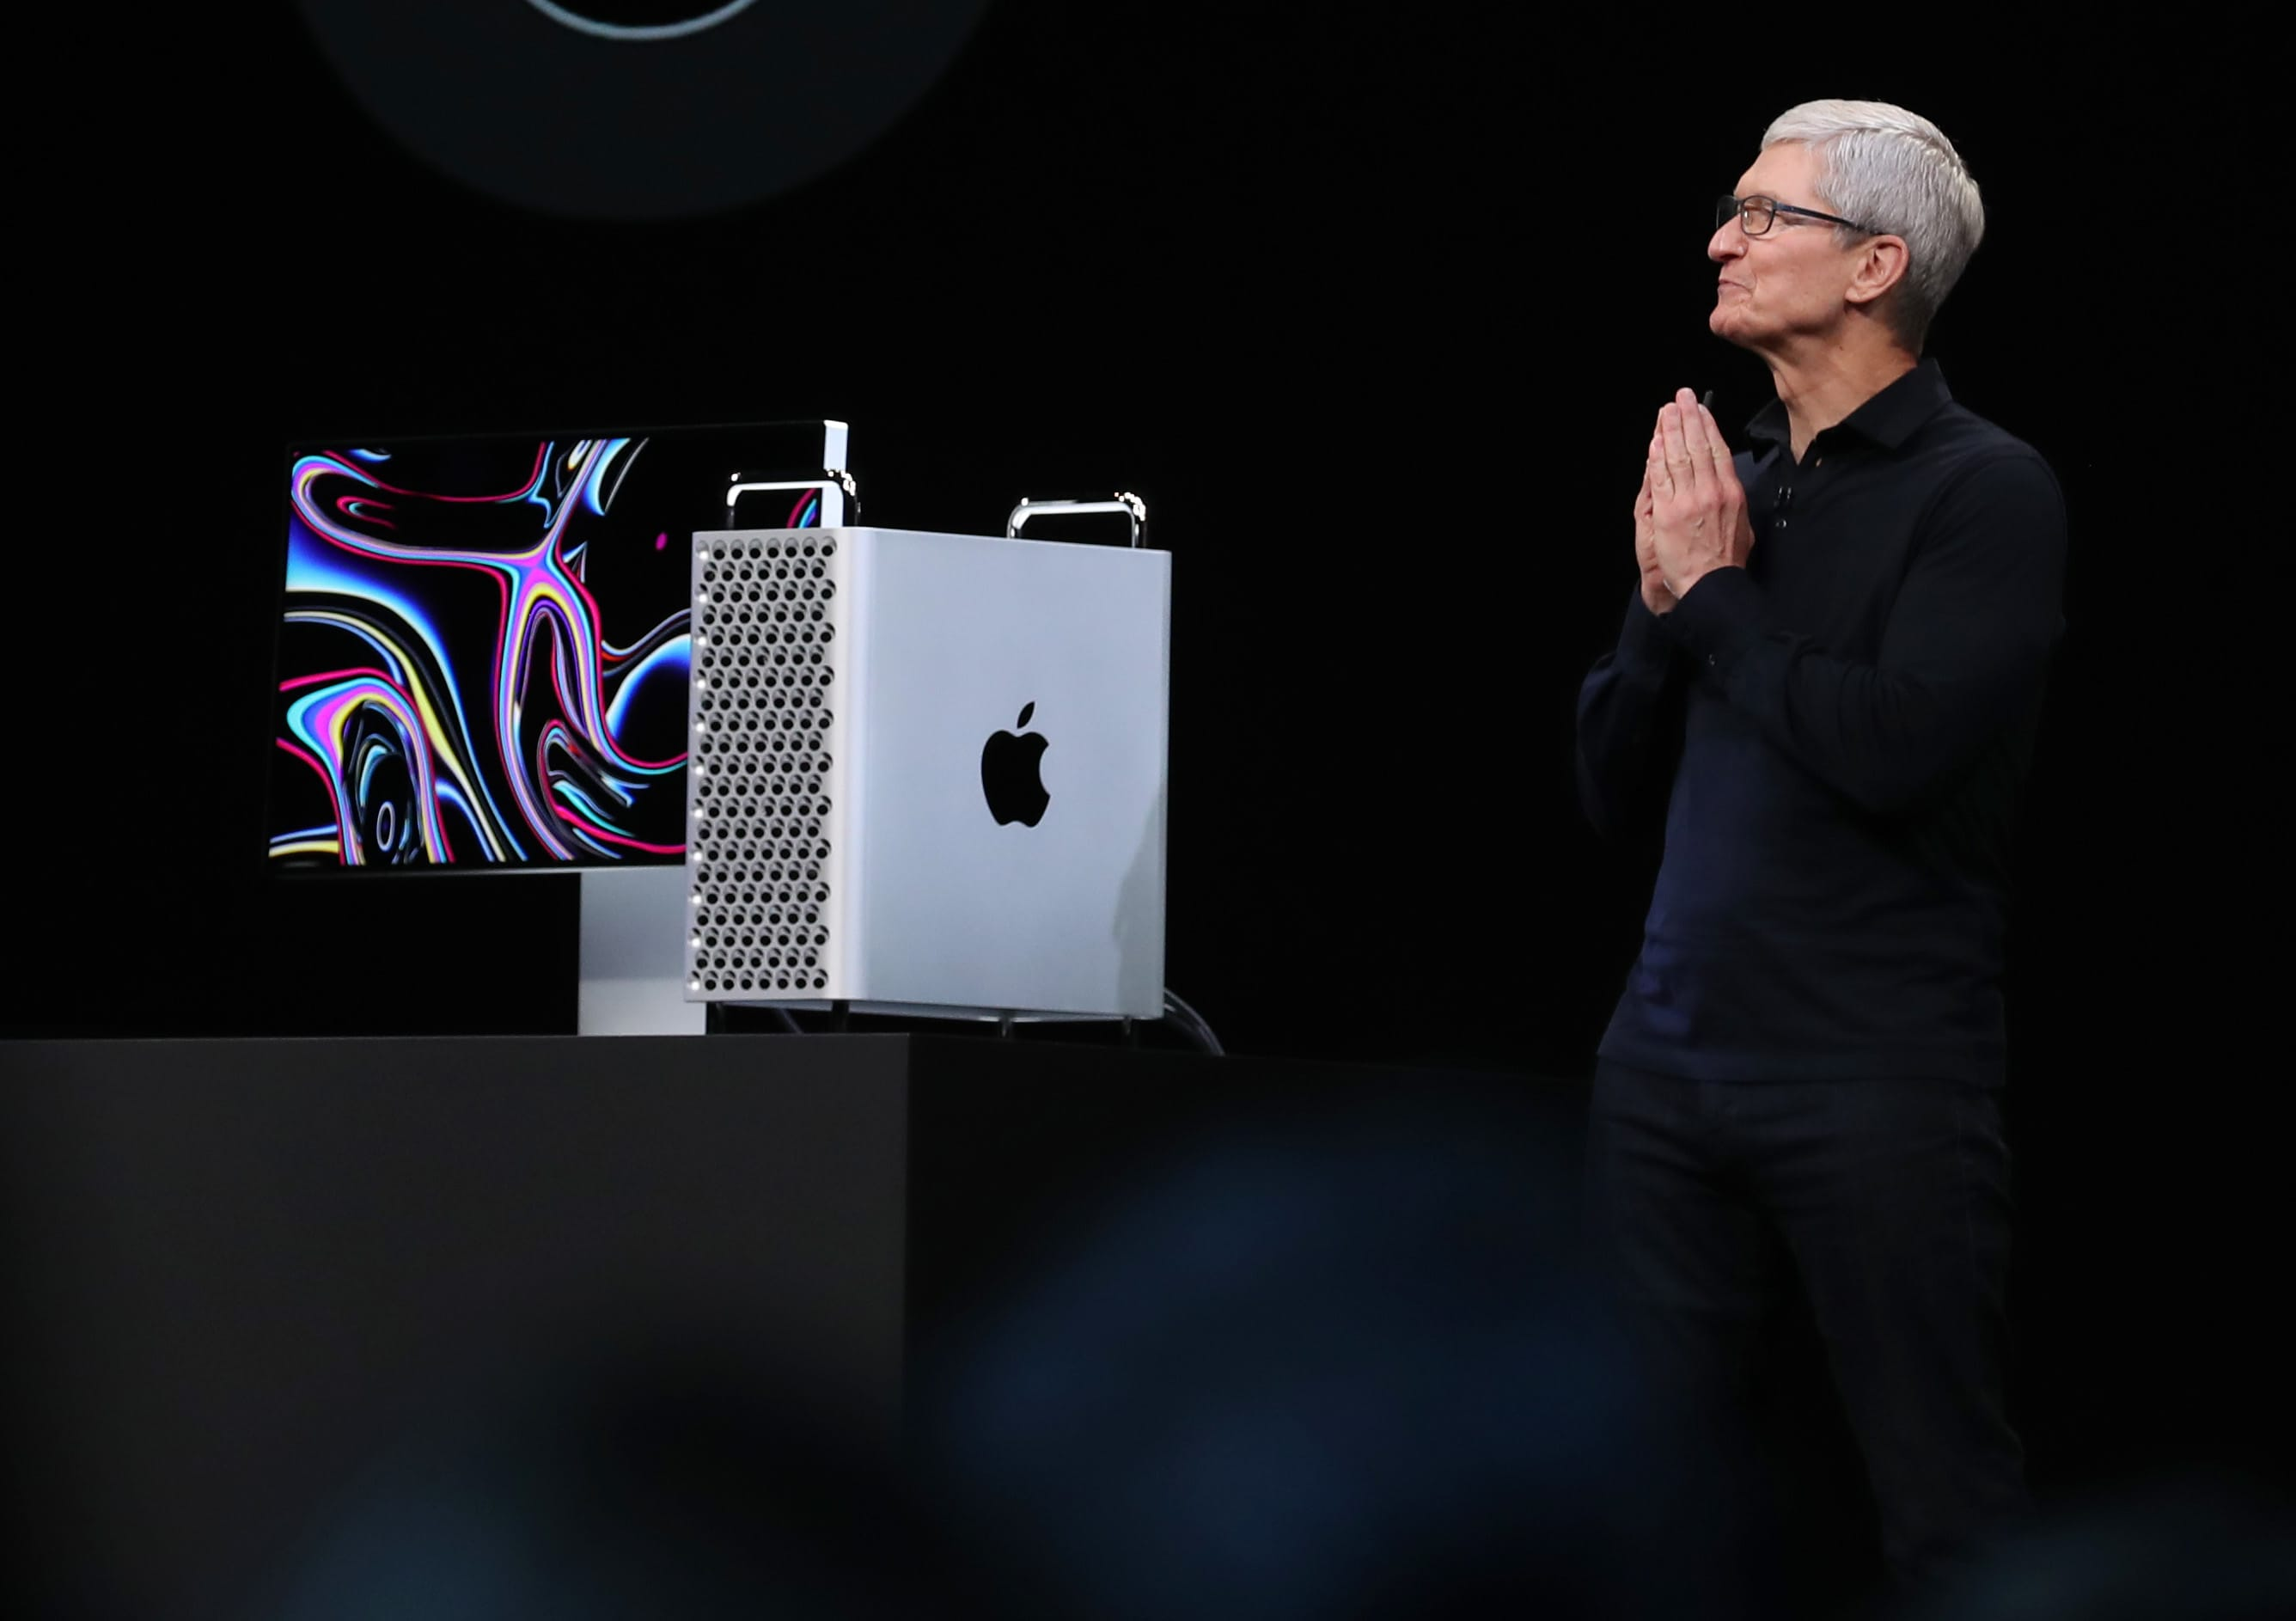 Apple will make the Mac Pro in Austin, avoiding some China tariffs